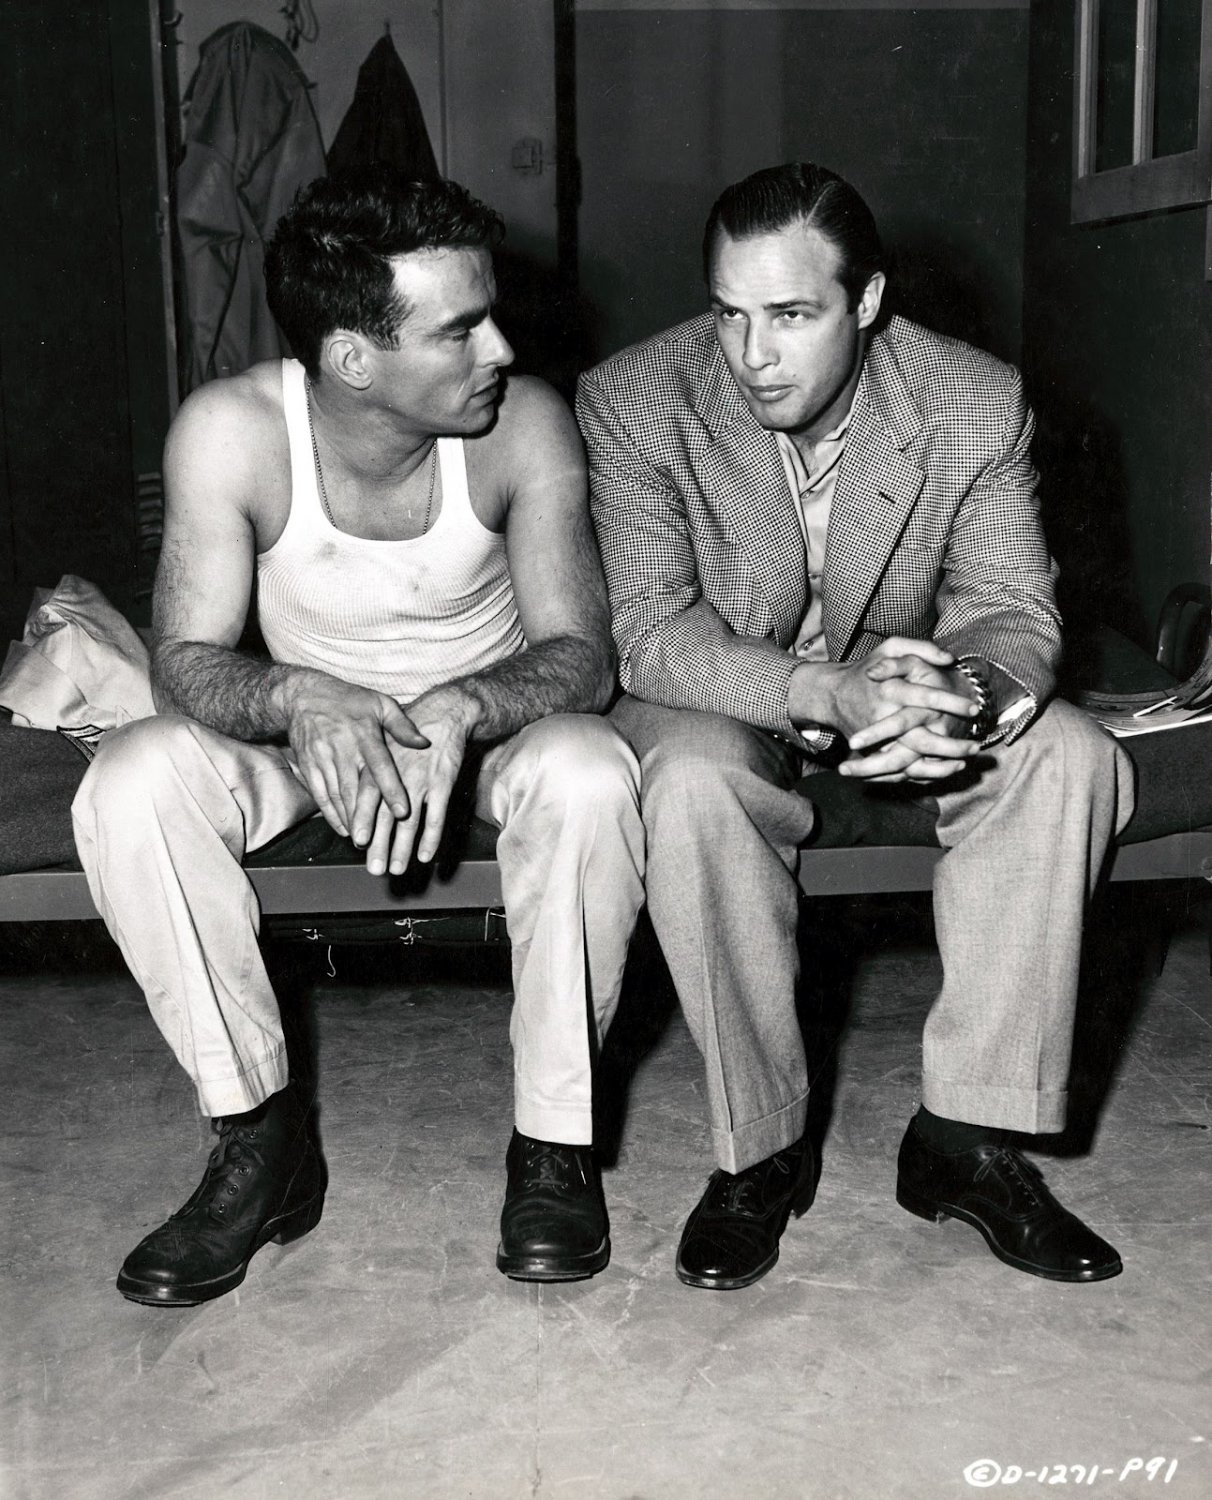 """MARLON BRANDO & MONTGOMERY CLIFT ON THE SET OF """"FROM HERE TO ETENITY"""" 8X10 PHOTO (AB-210)"""